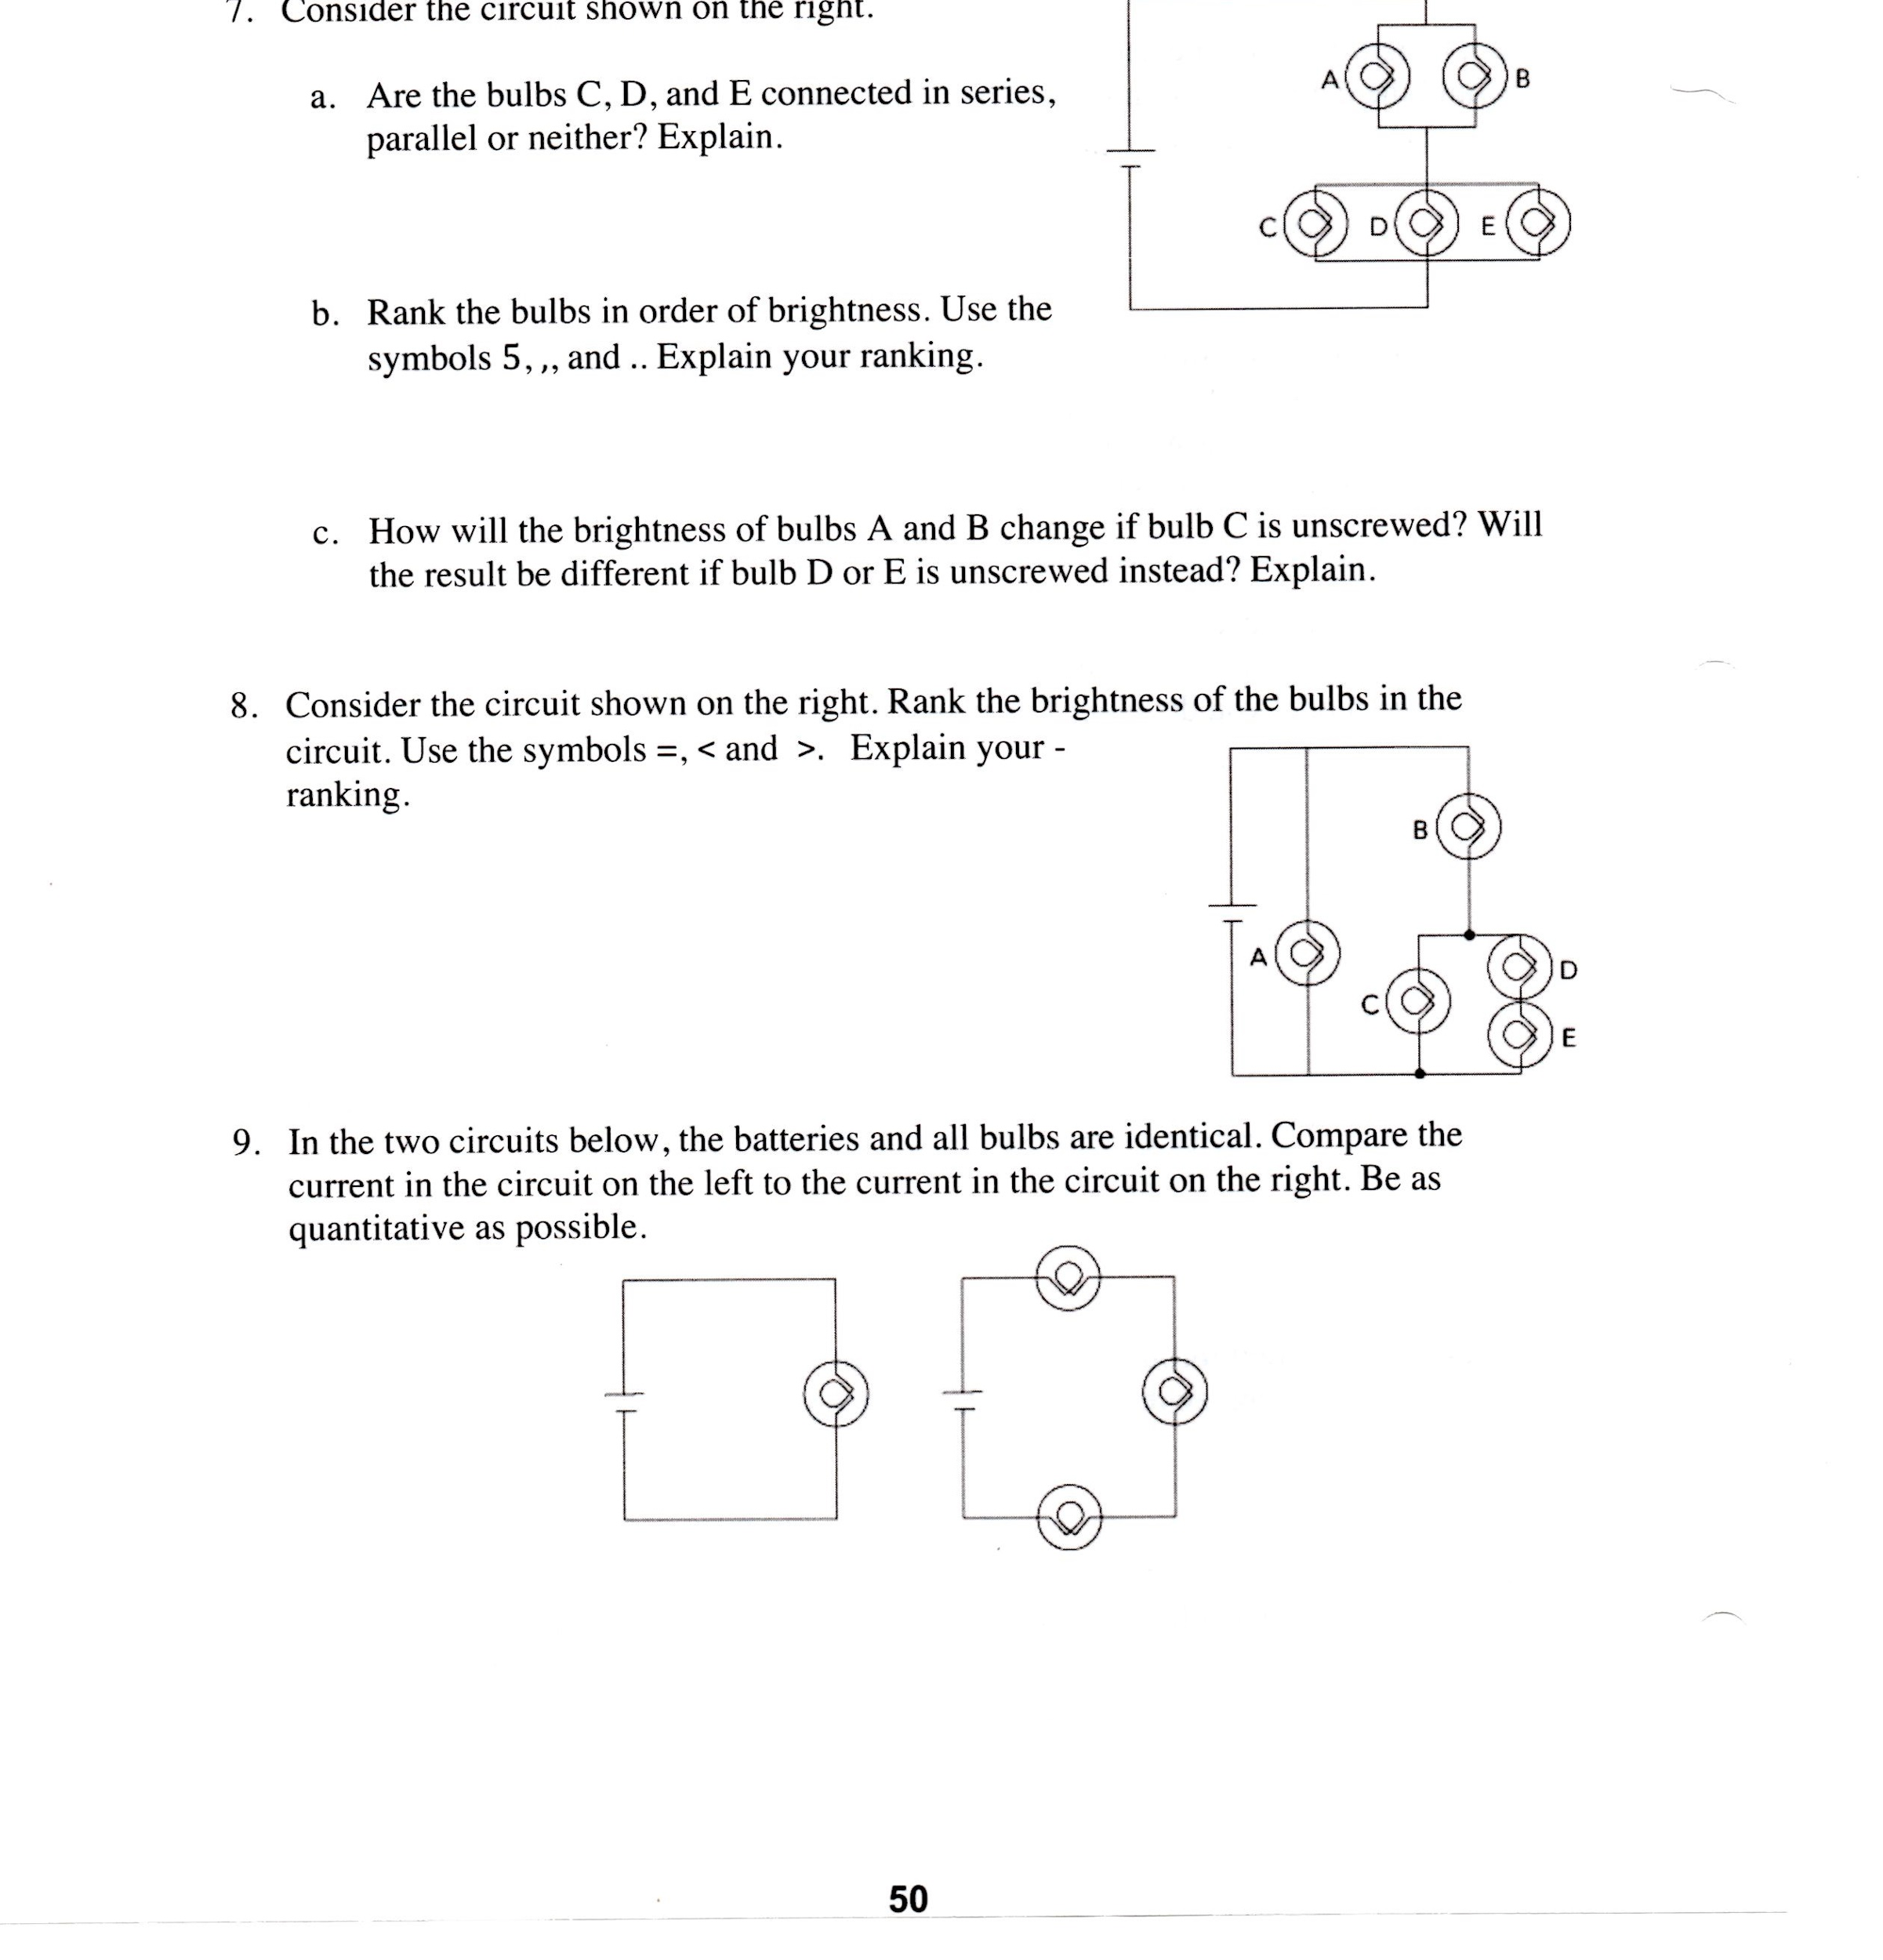 Worksheet Series Circuits Fun Study Site And Parallel For Kids Best Images Of Circuit Component Definition Voltage Full Size Transformer